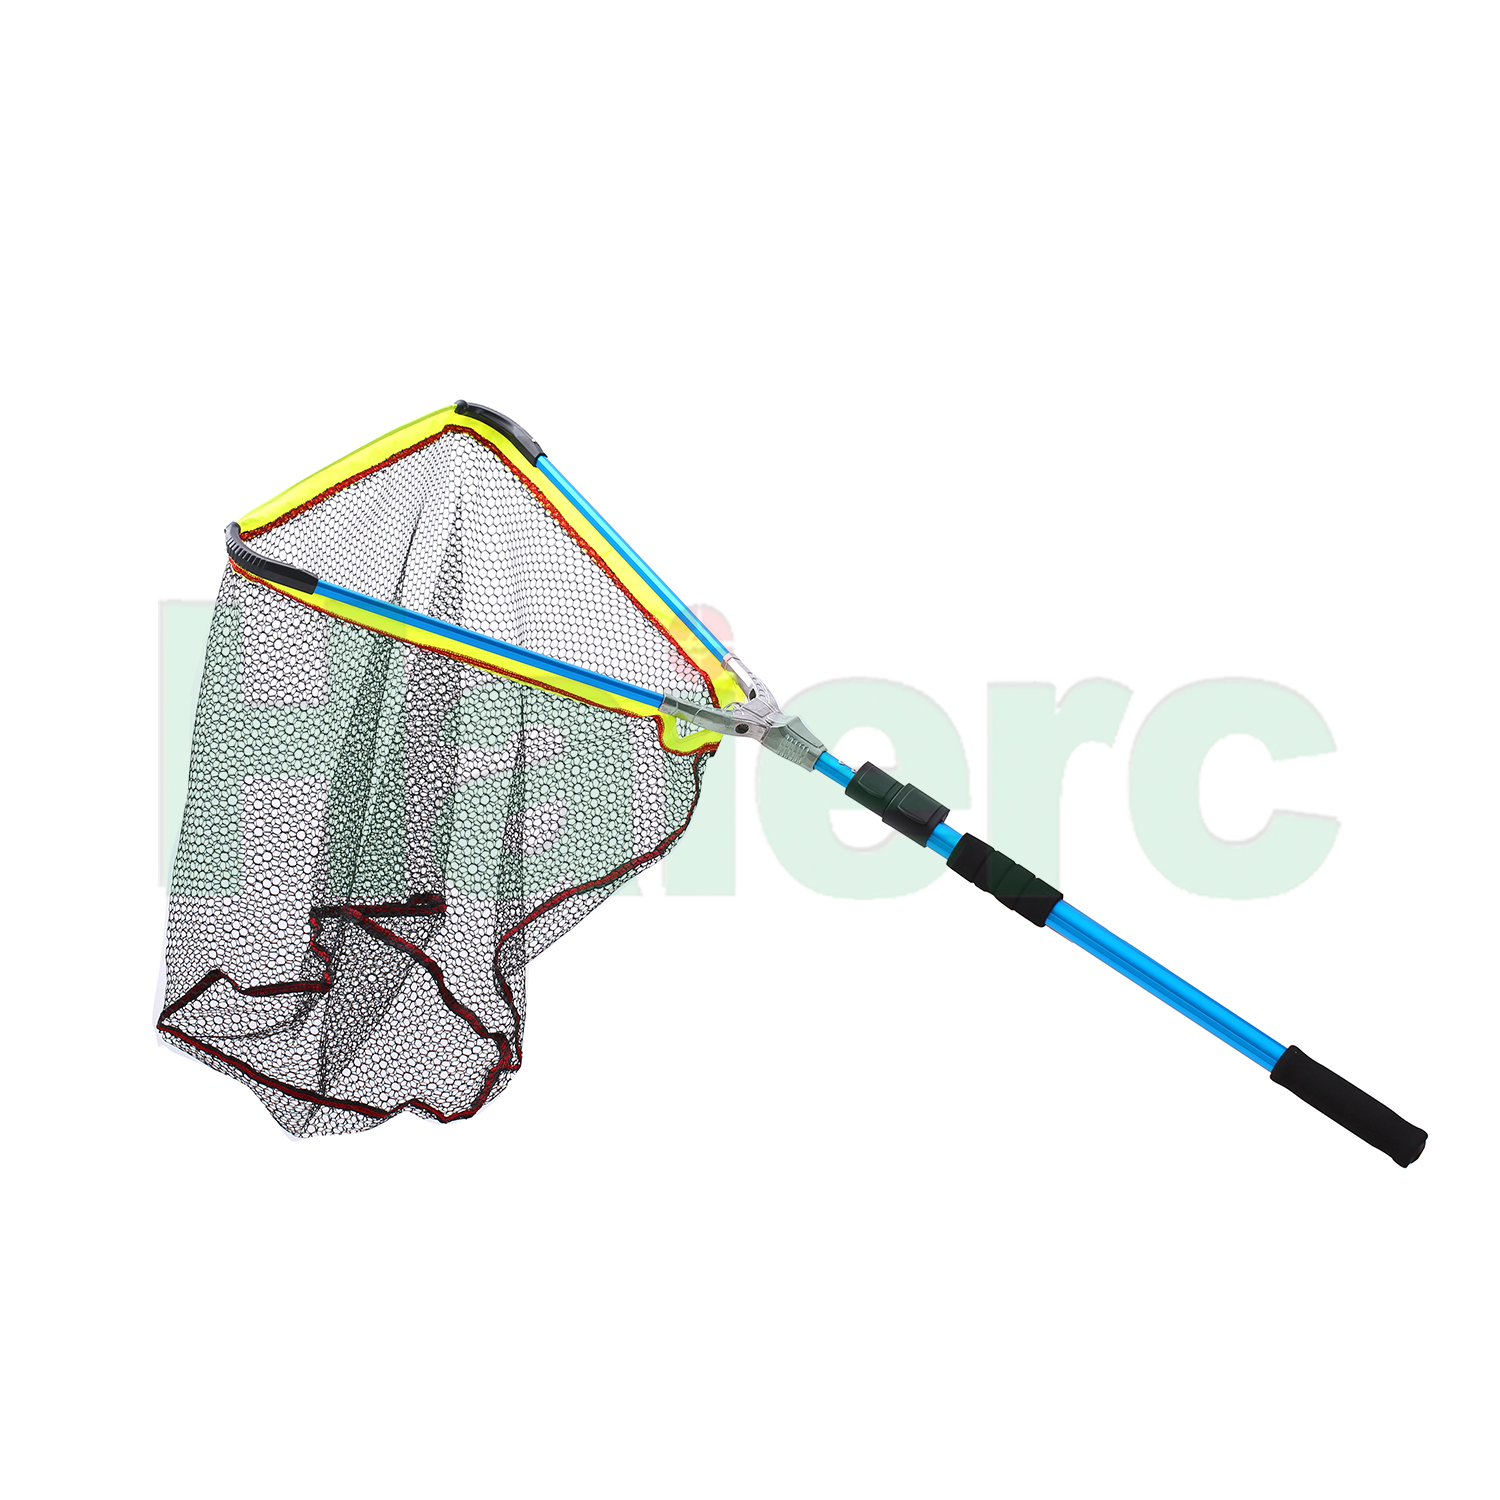 Haierc Fishing Net Wildcat Net HC3302